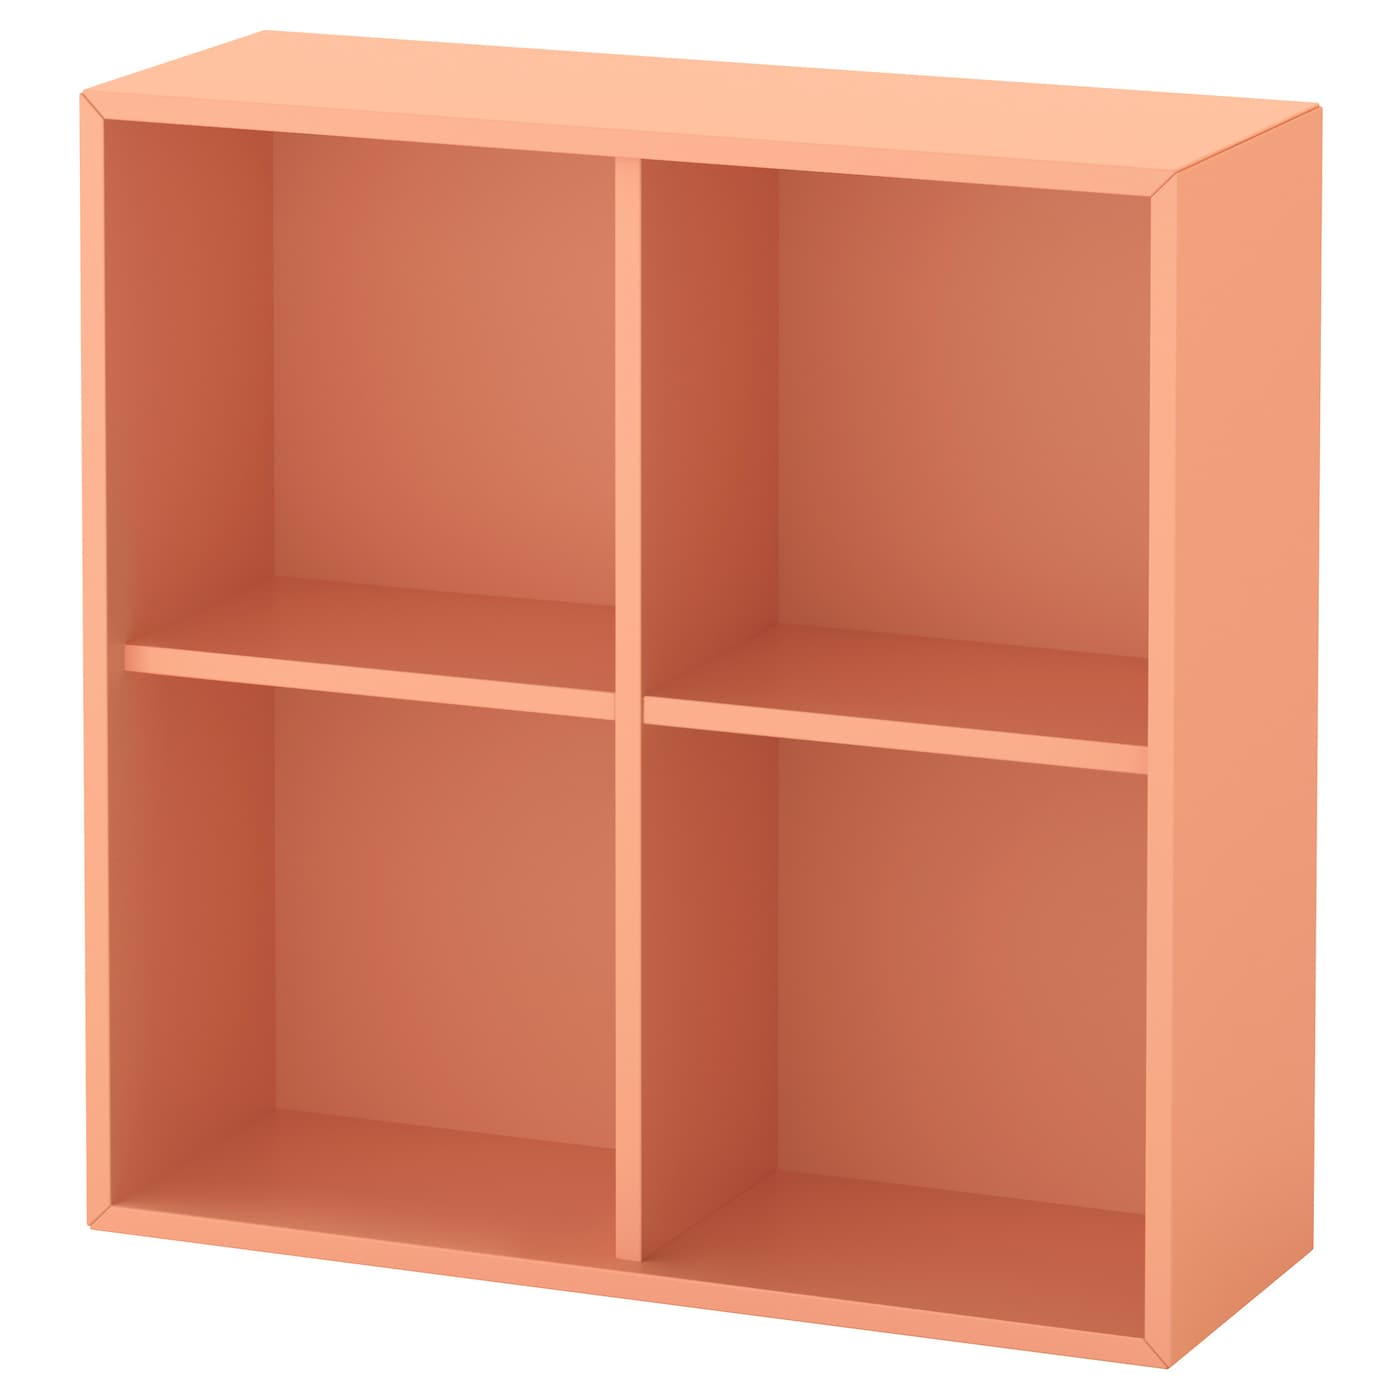 eket rangement 4 compartiments orange clair 70 x 25 x 70 cm ikea. Black Bedroom Furniture Sets. Home Design Ideas